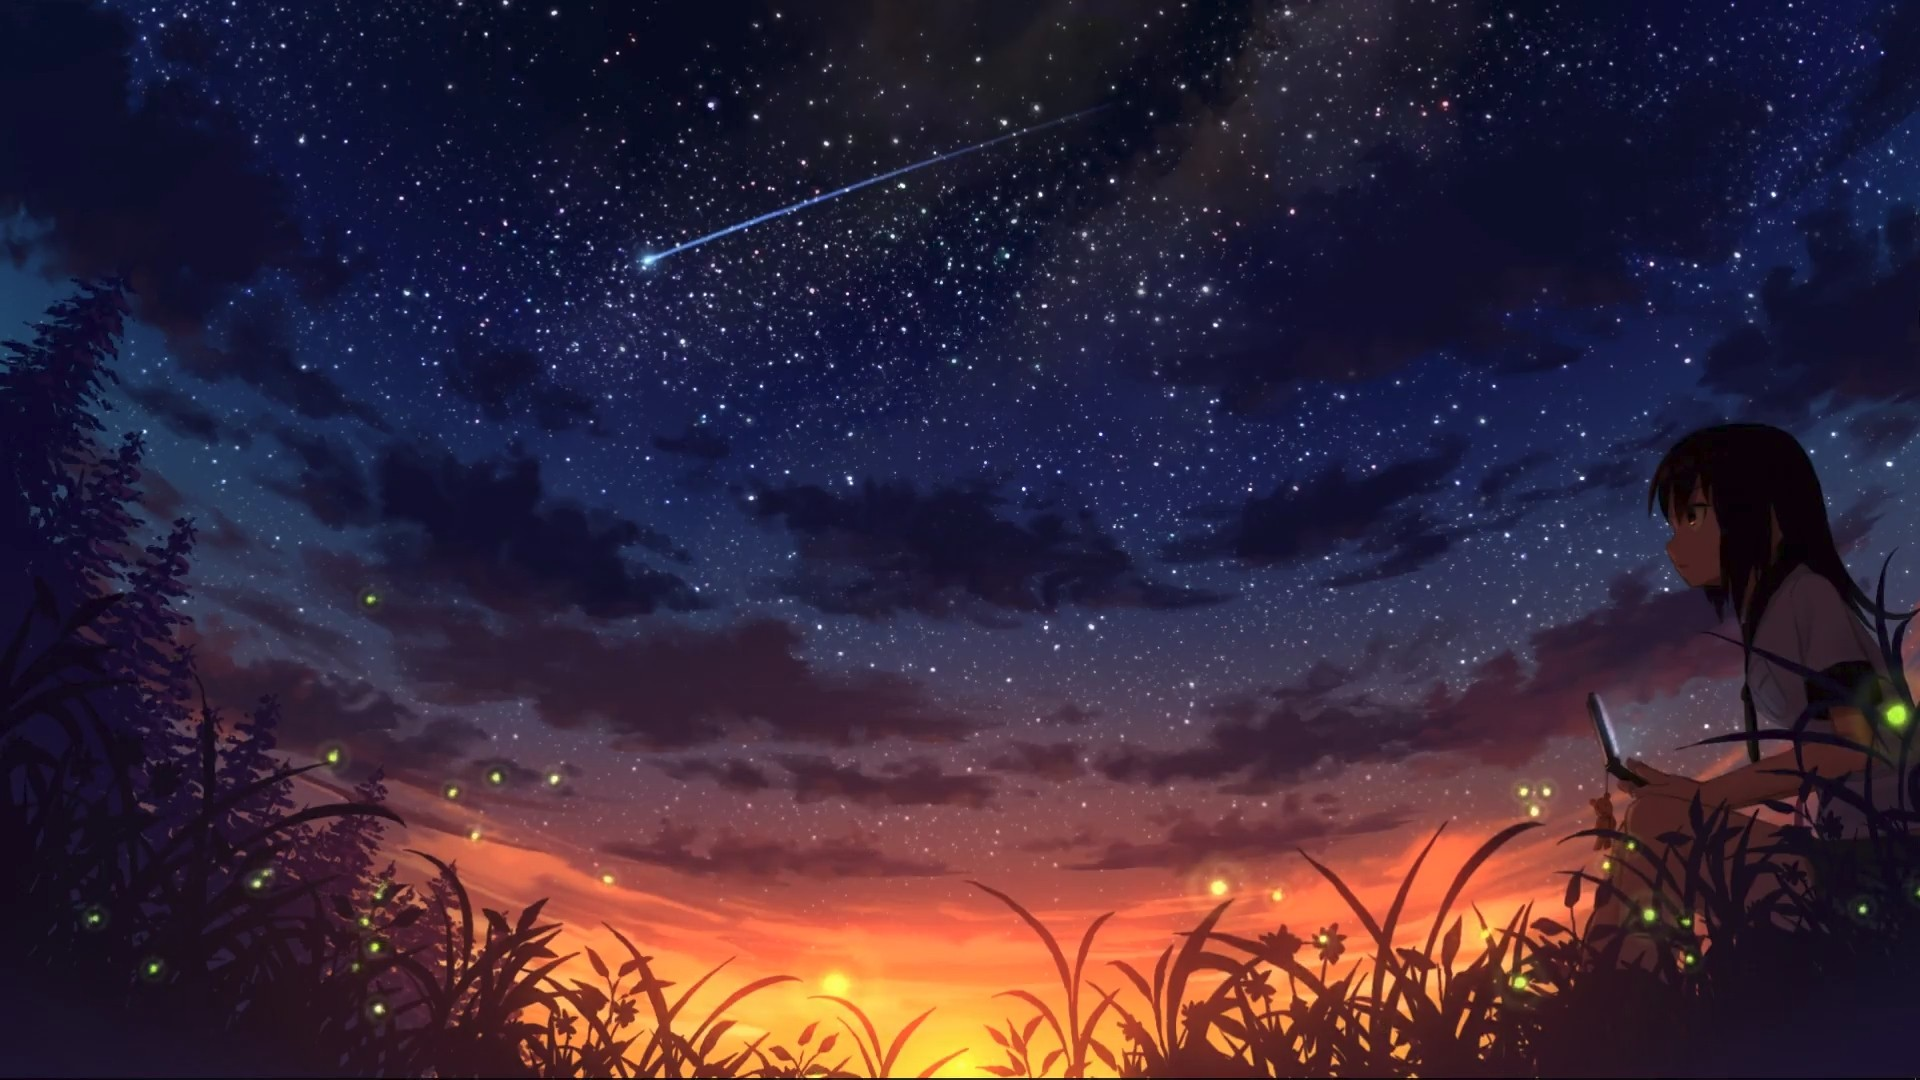 Anime Scenery Wallpapers: 28 Images ...